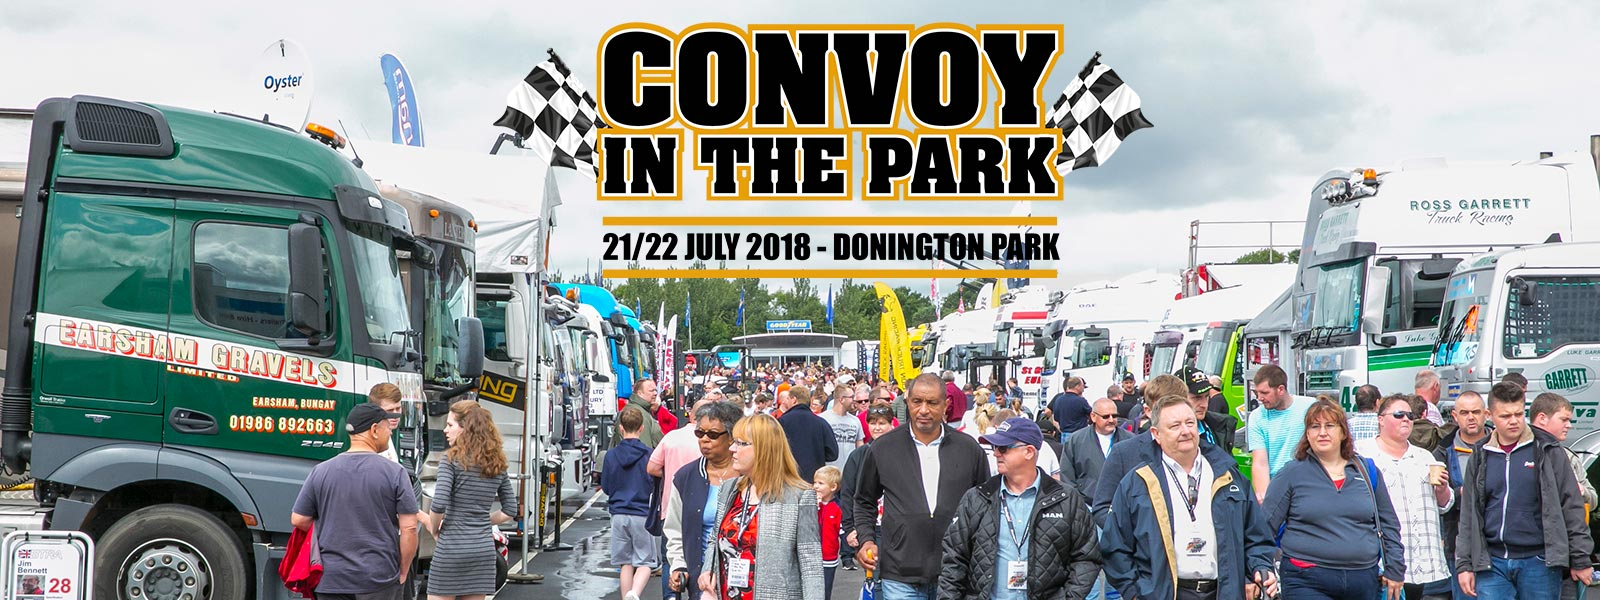 Convoy-in-the-park-2018-1